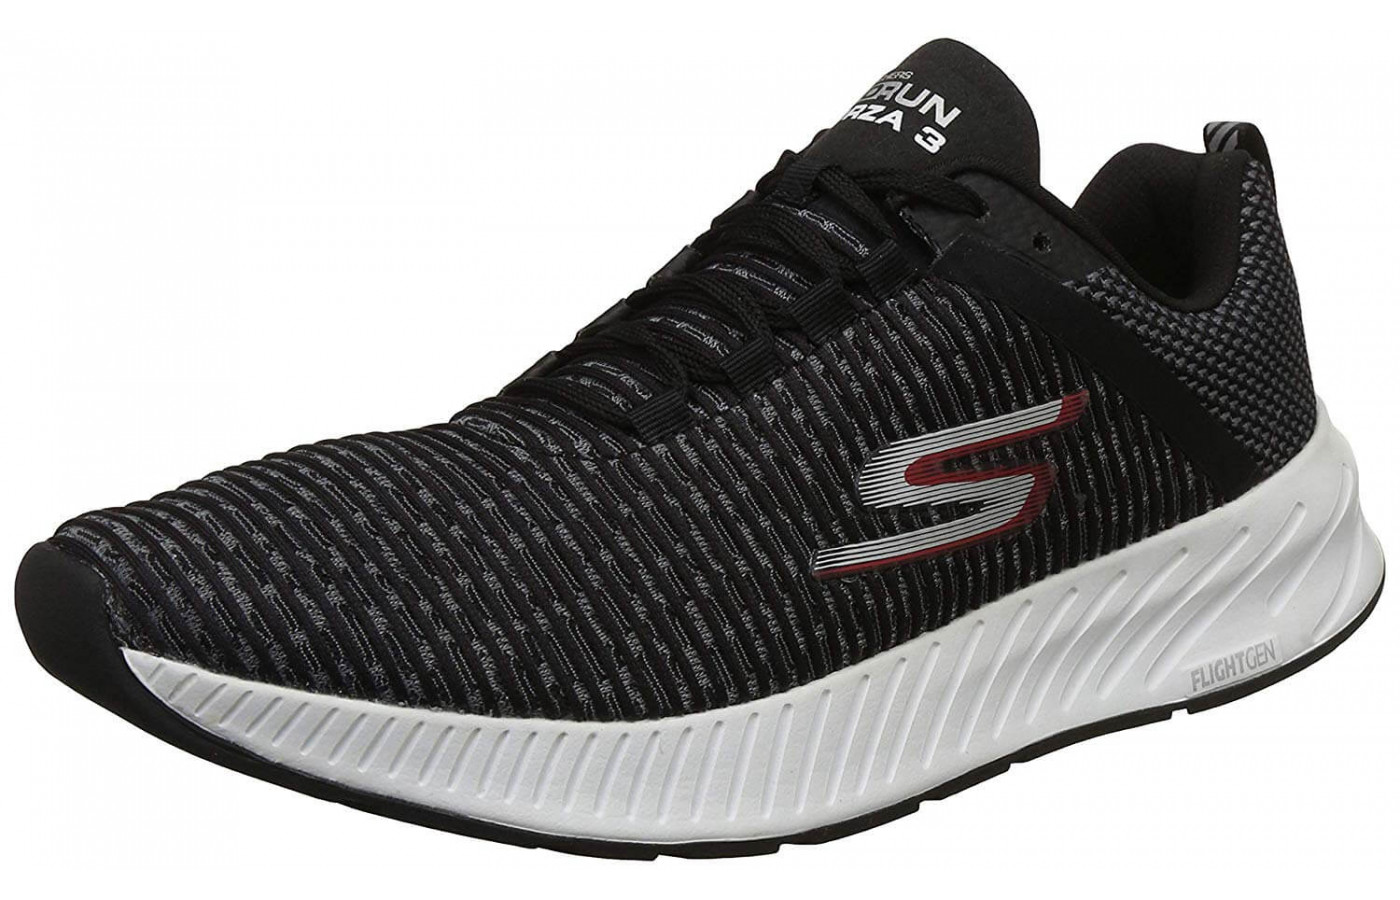 Skechers Gorun Forza 3 Fully Reviewed